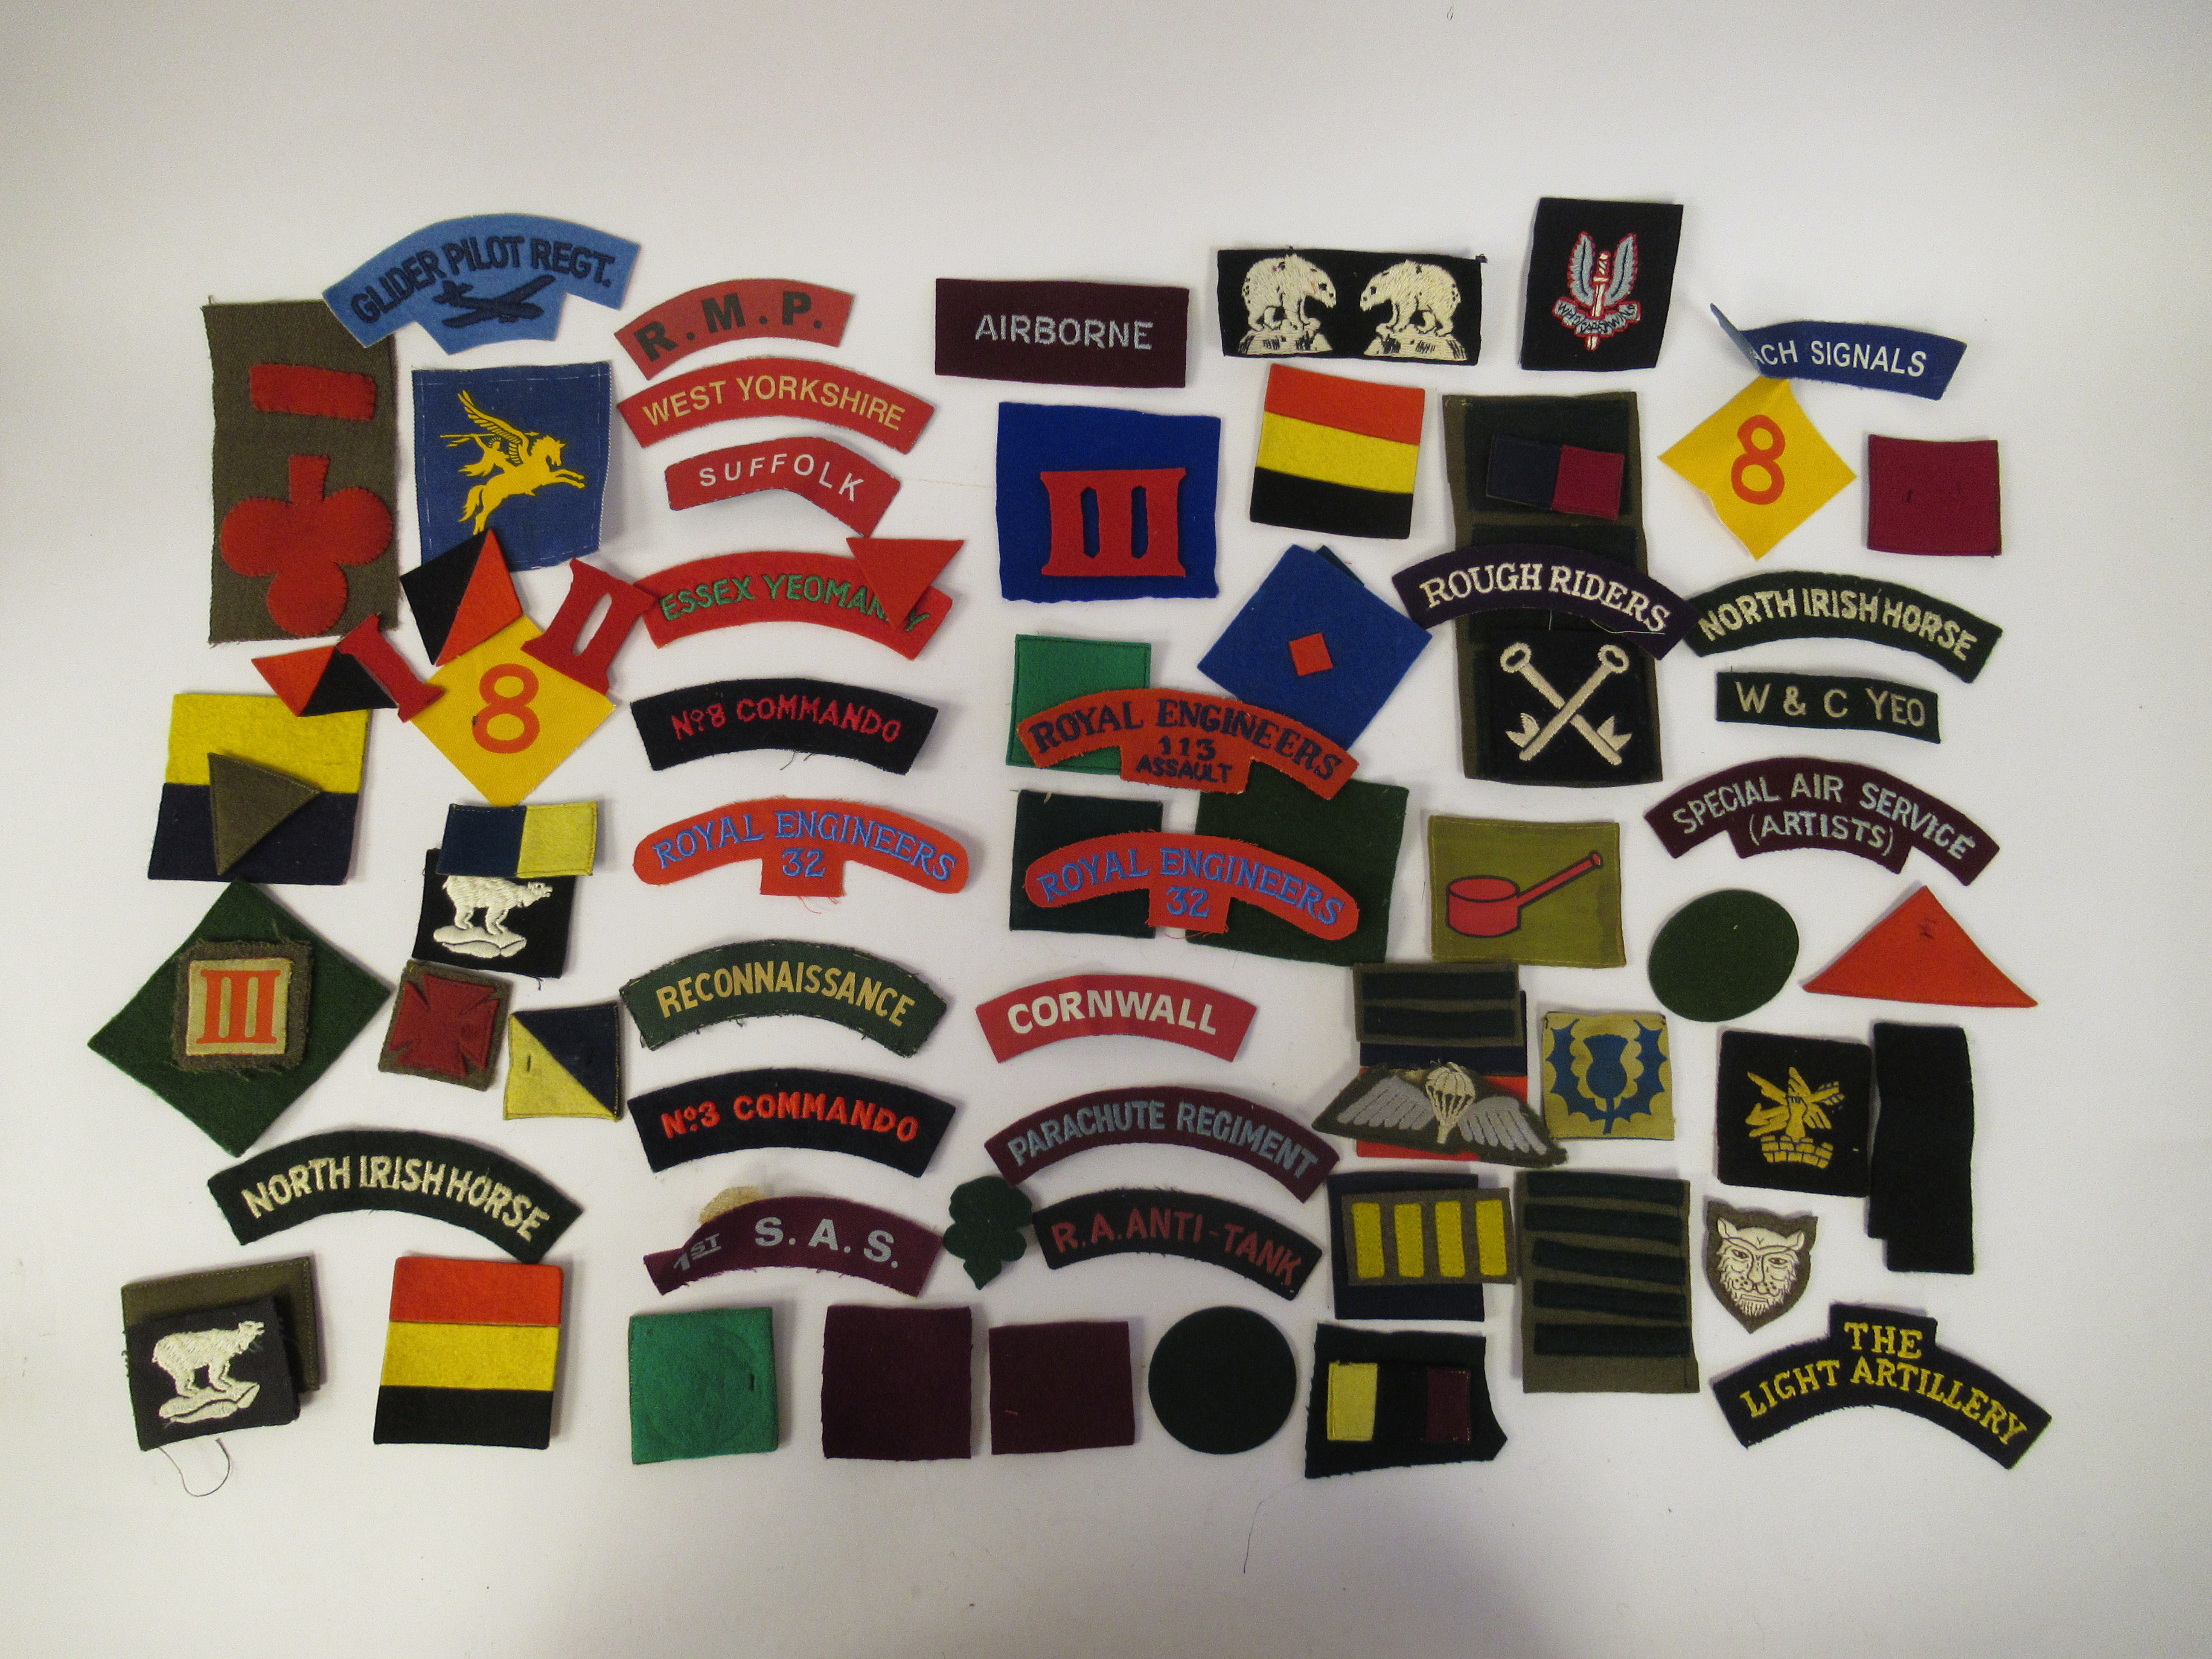 An uncollated collection of military cloth uniform badges: to include North Irish Horse, No8